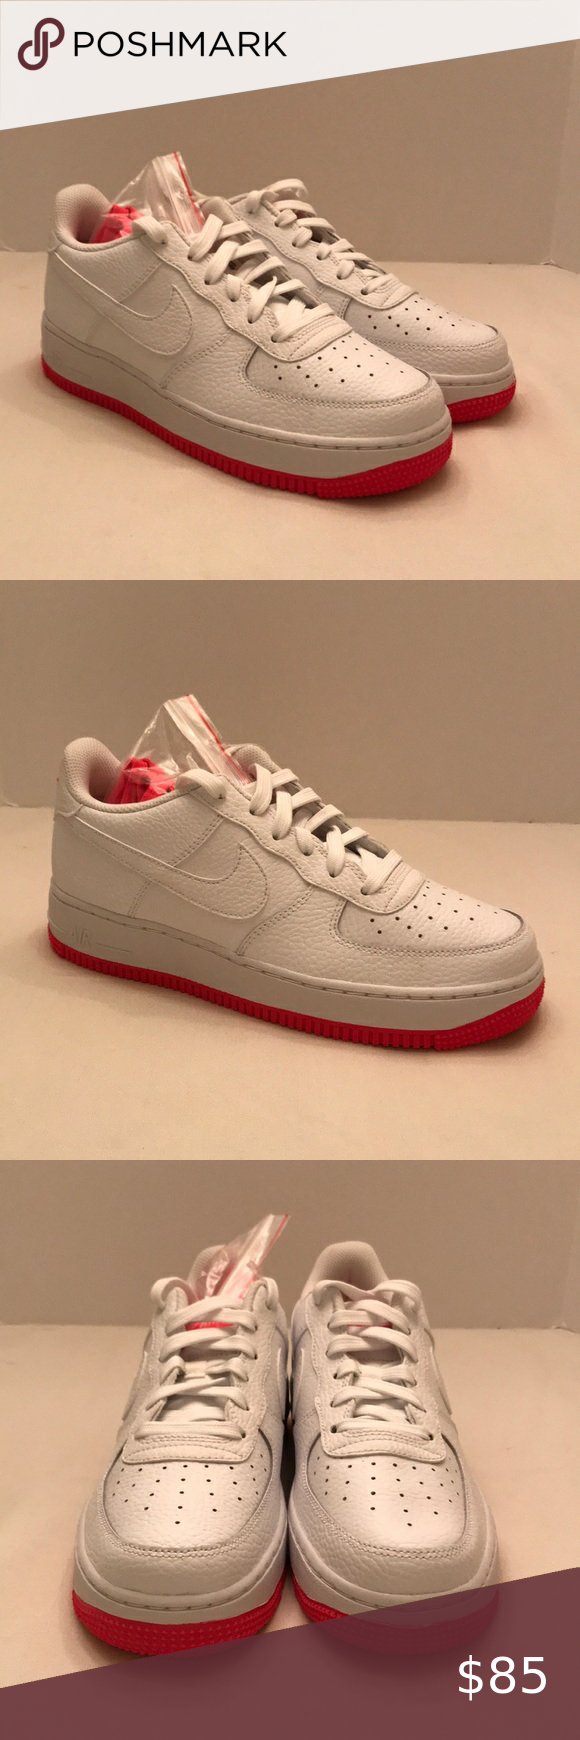 Nike Air Force 1 Low GS 'White Racer